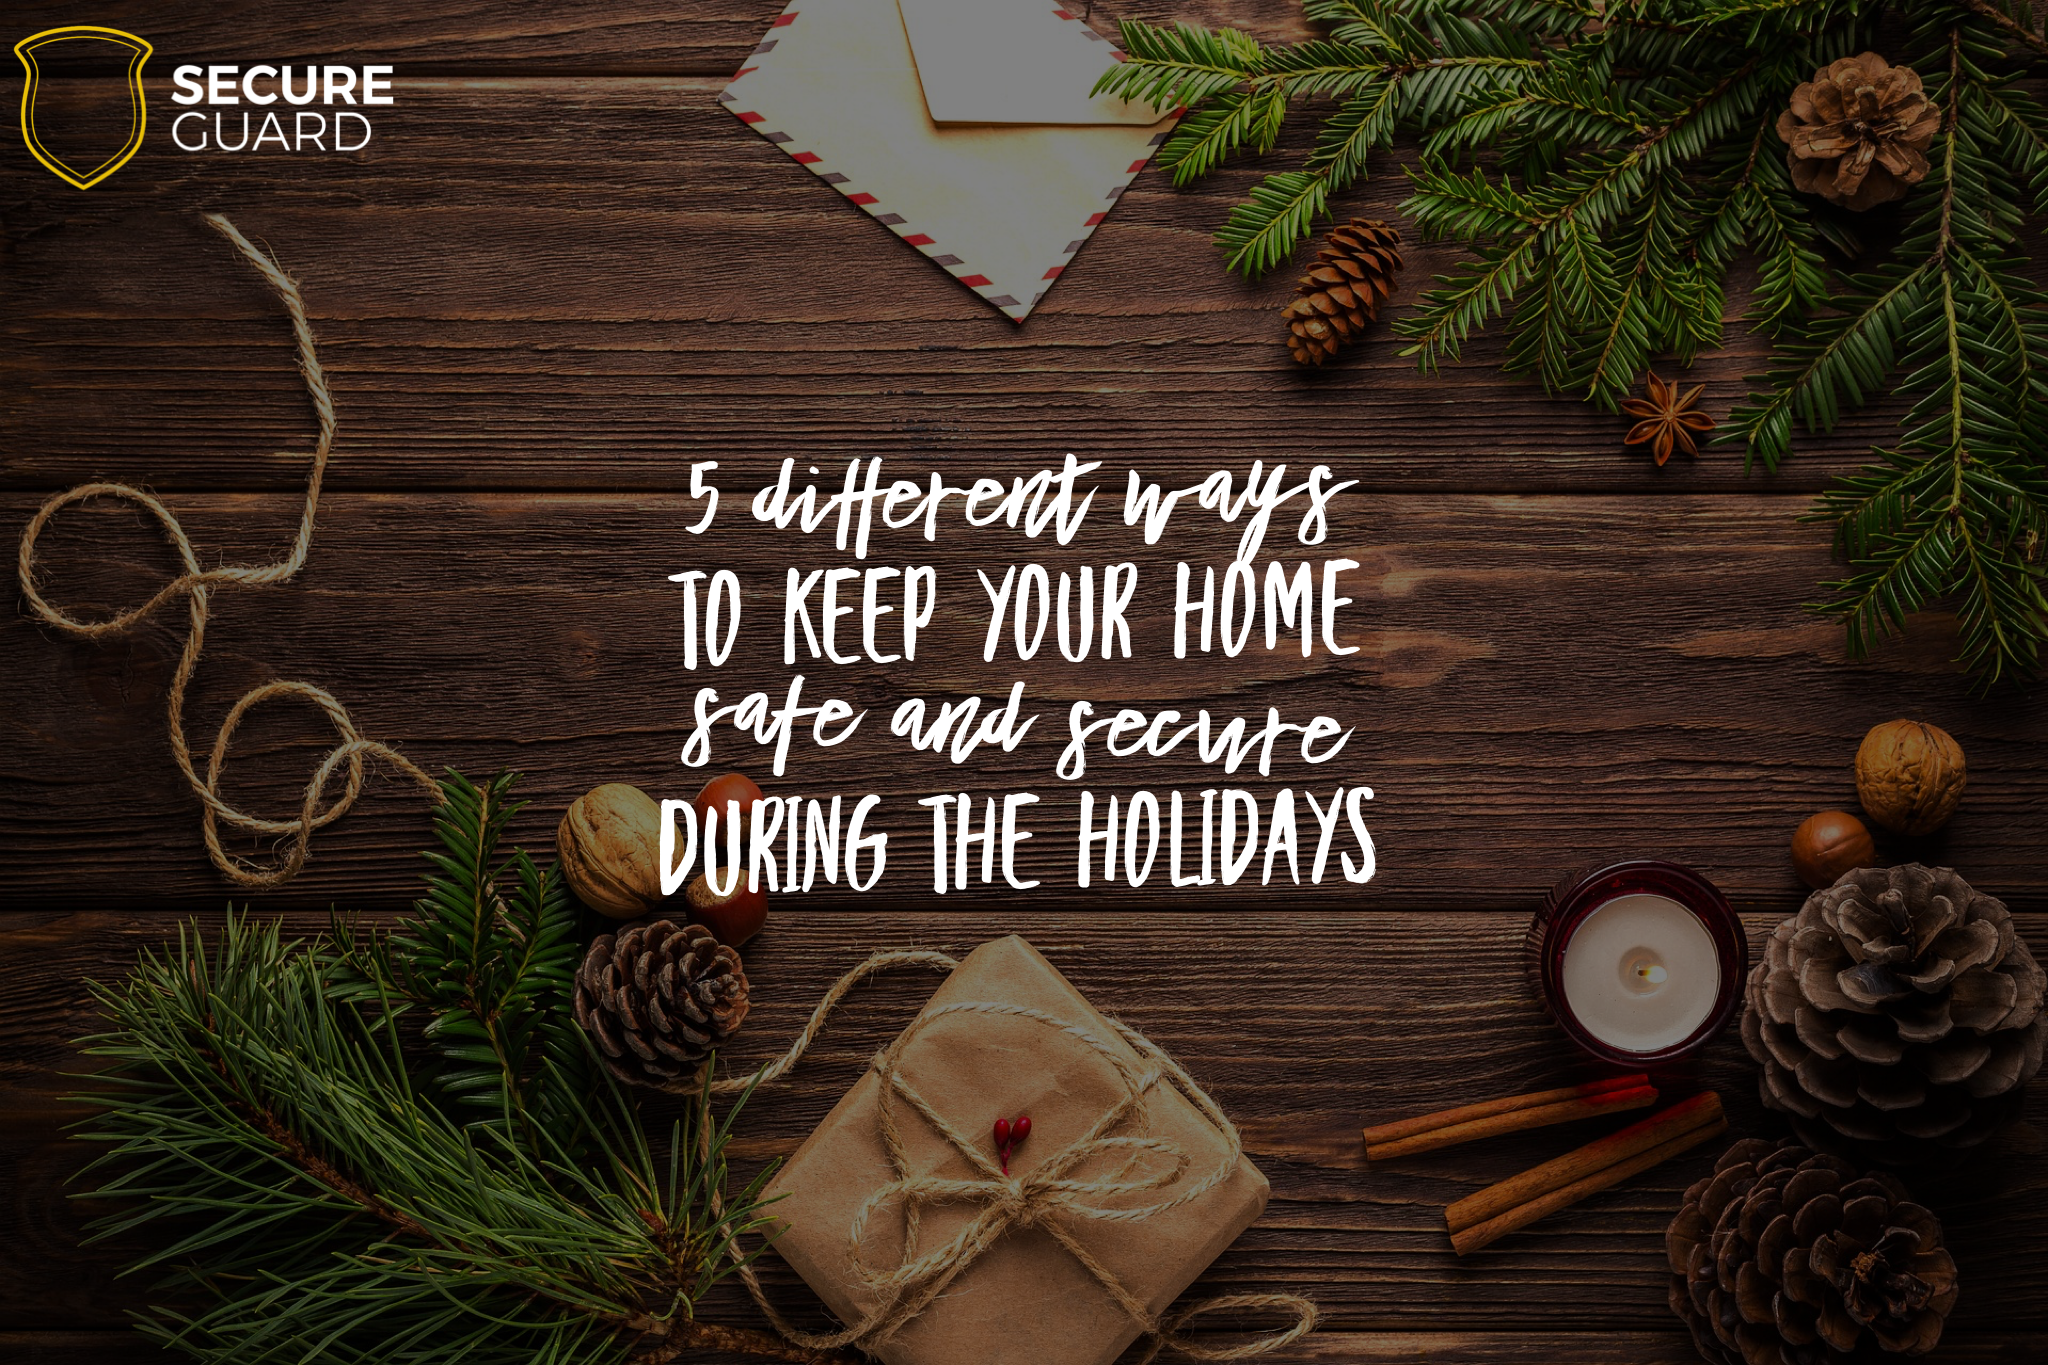 Home Security Tips During Holidays